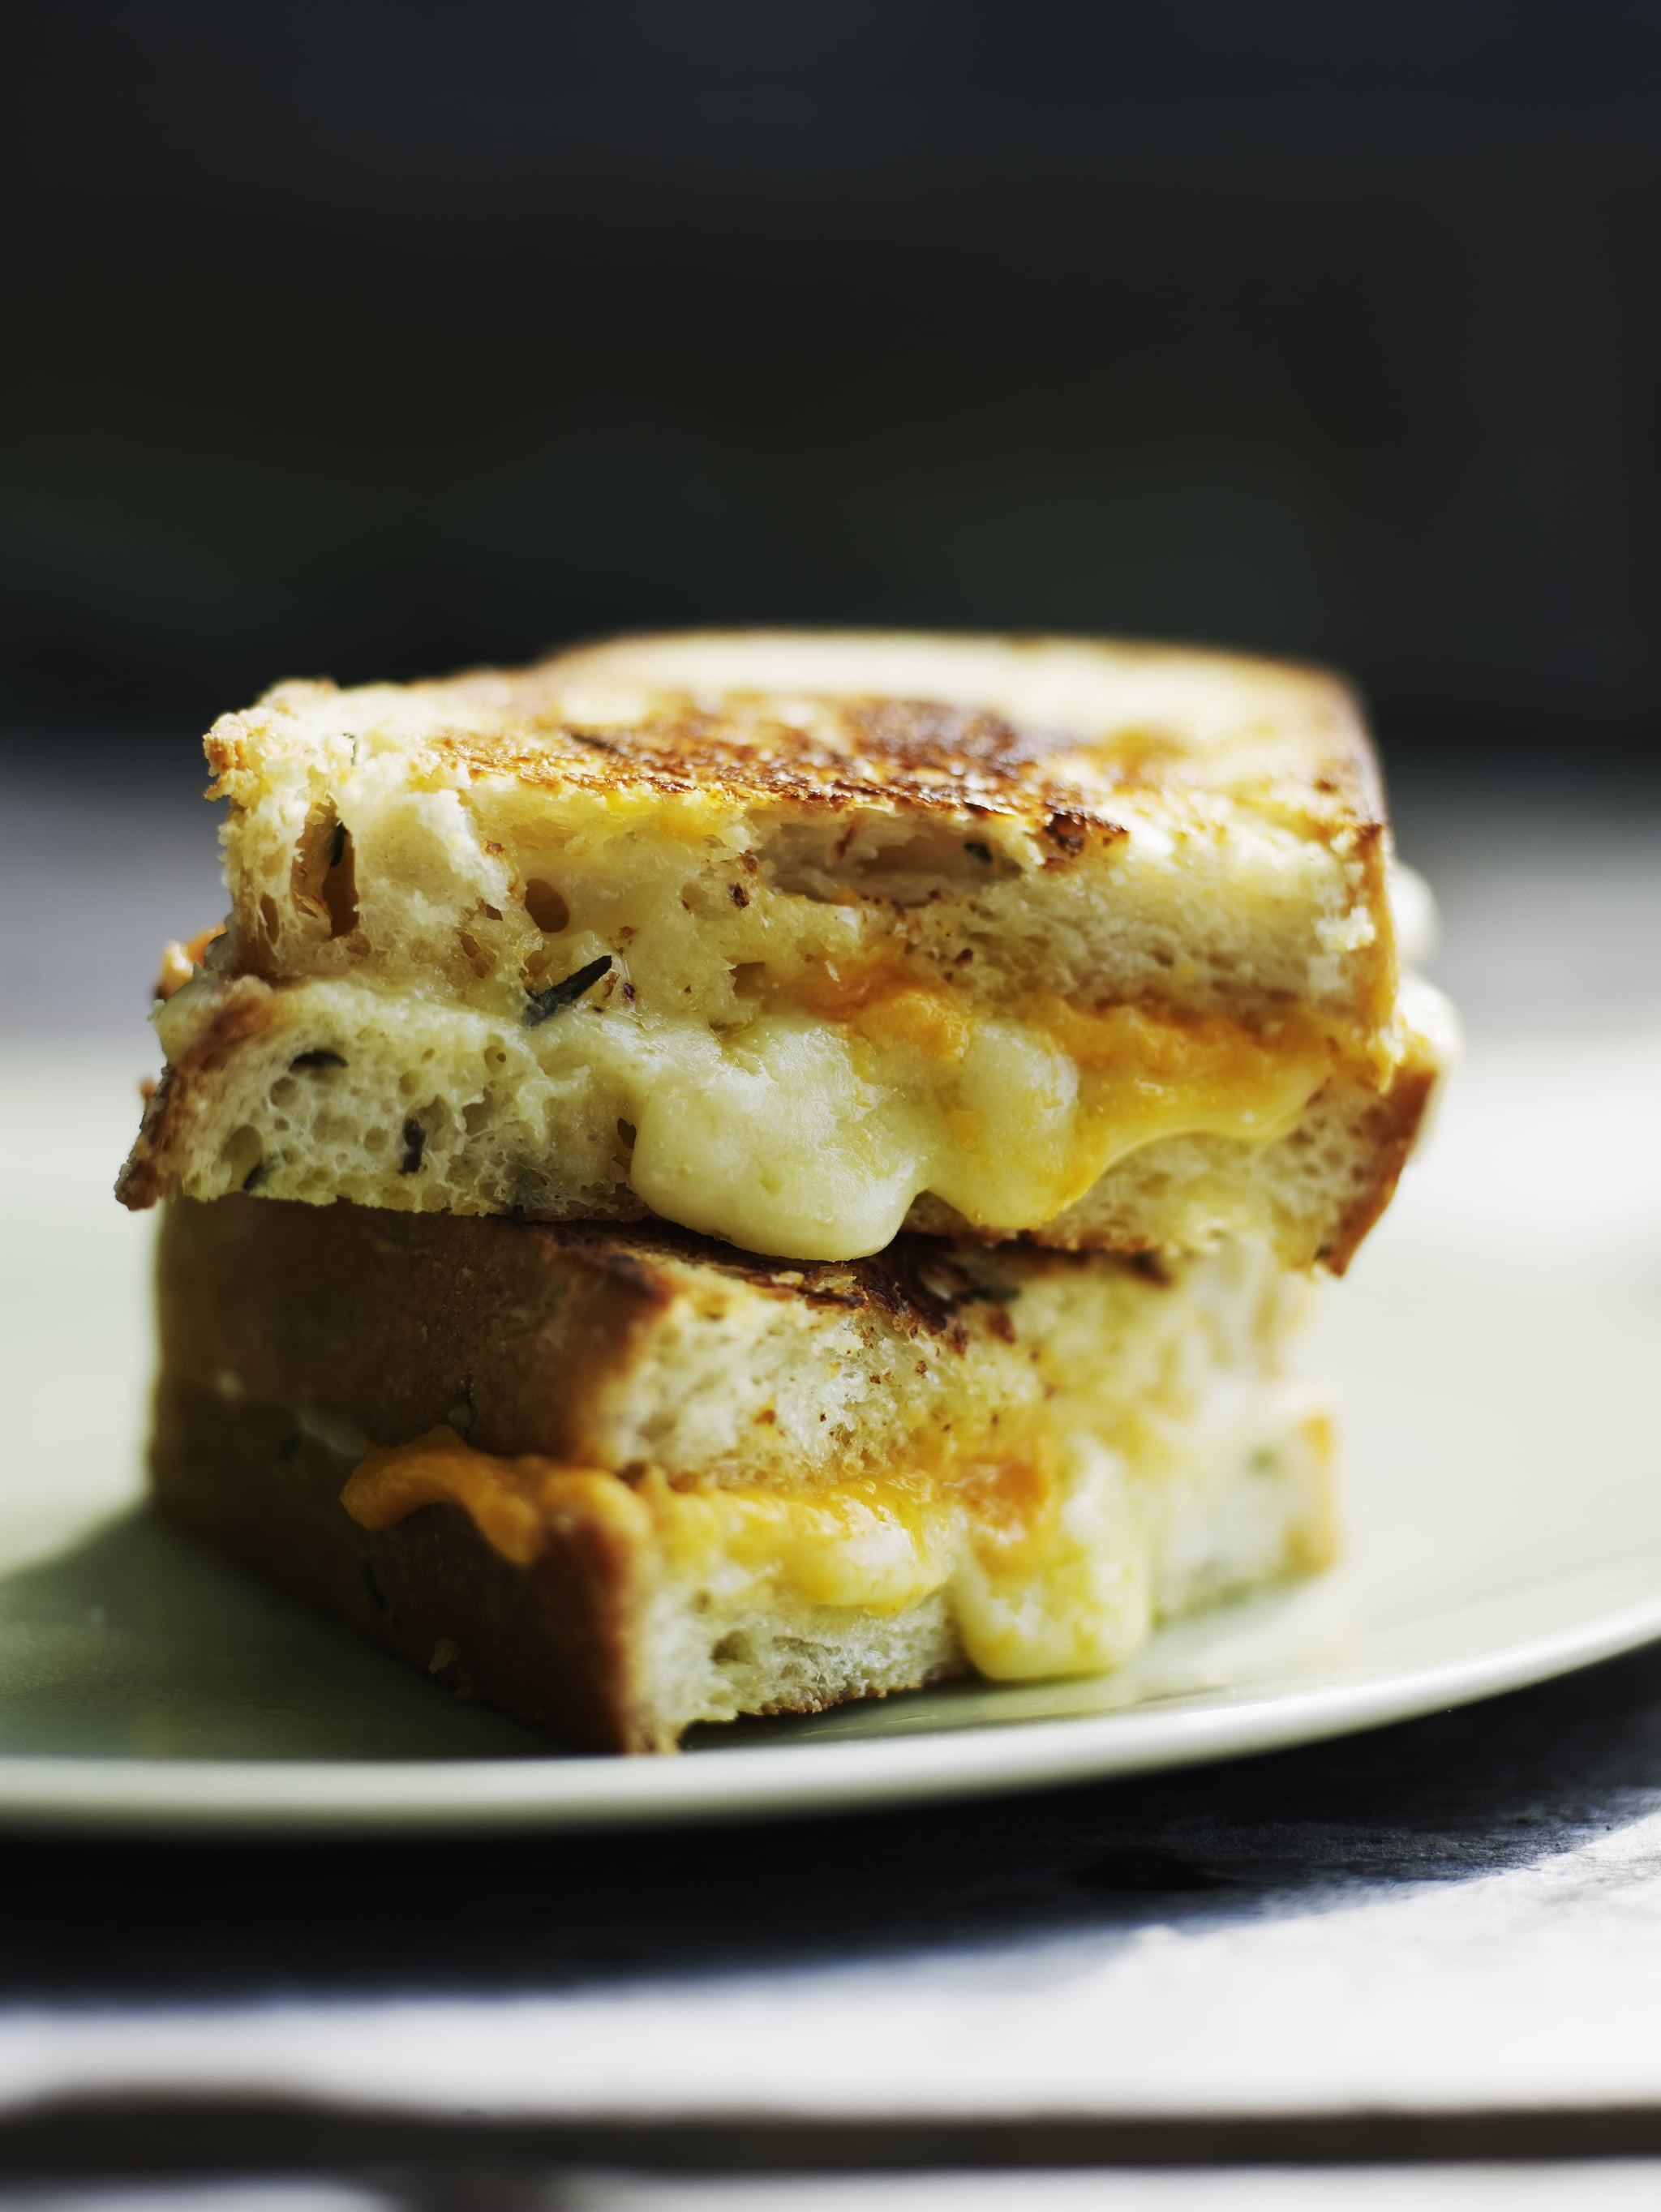 Grilled cheese sandwich with aged cheddar on rosemary crusty bread